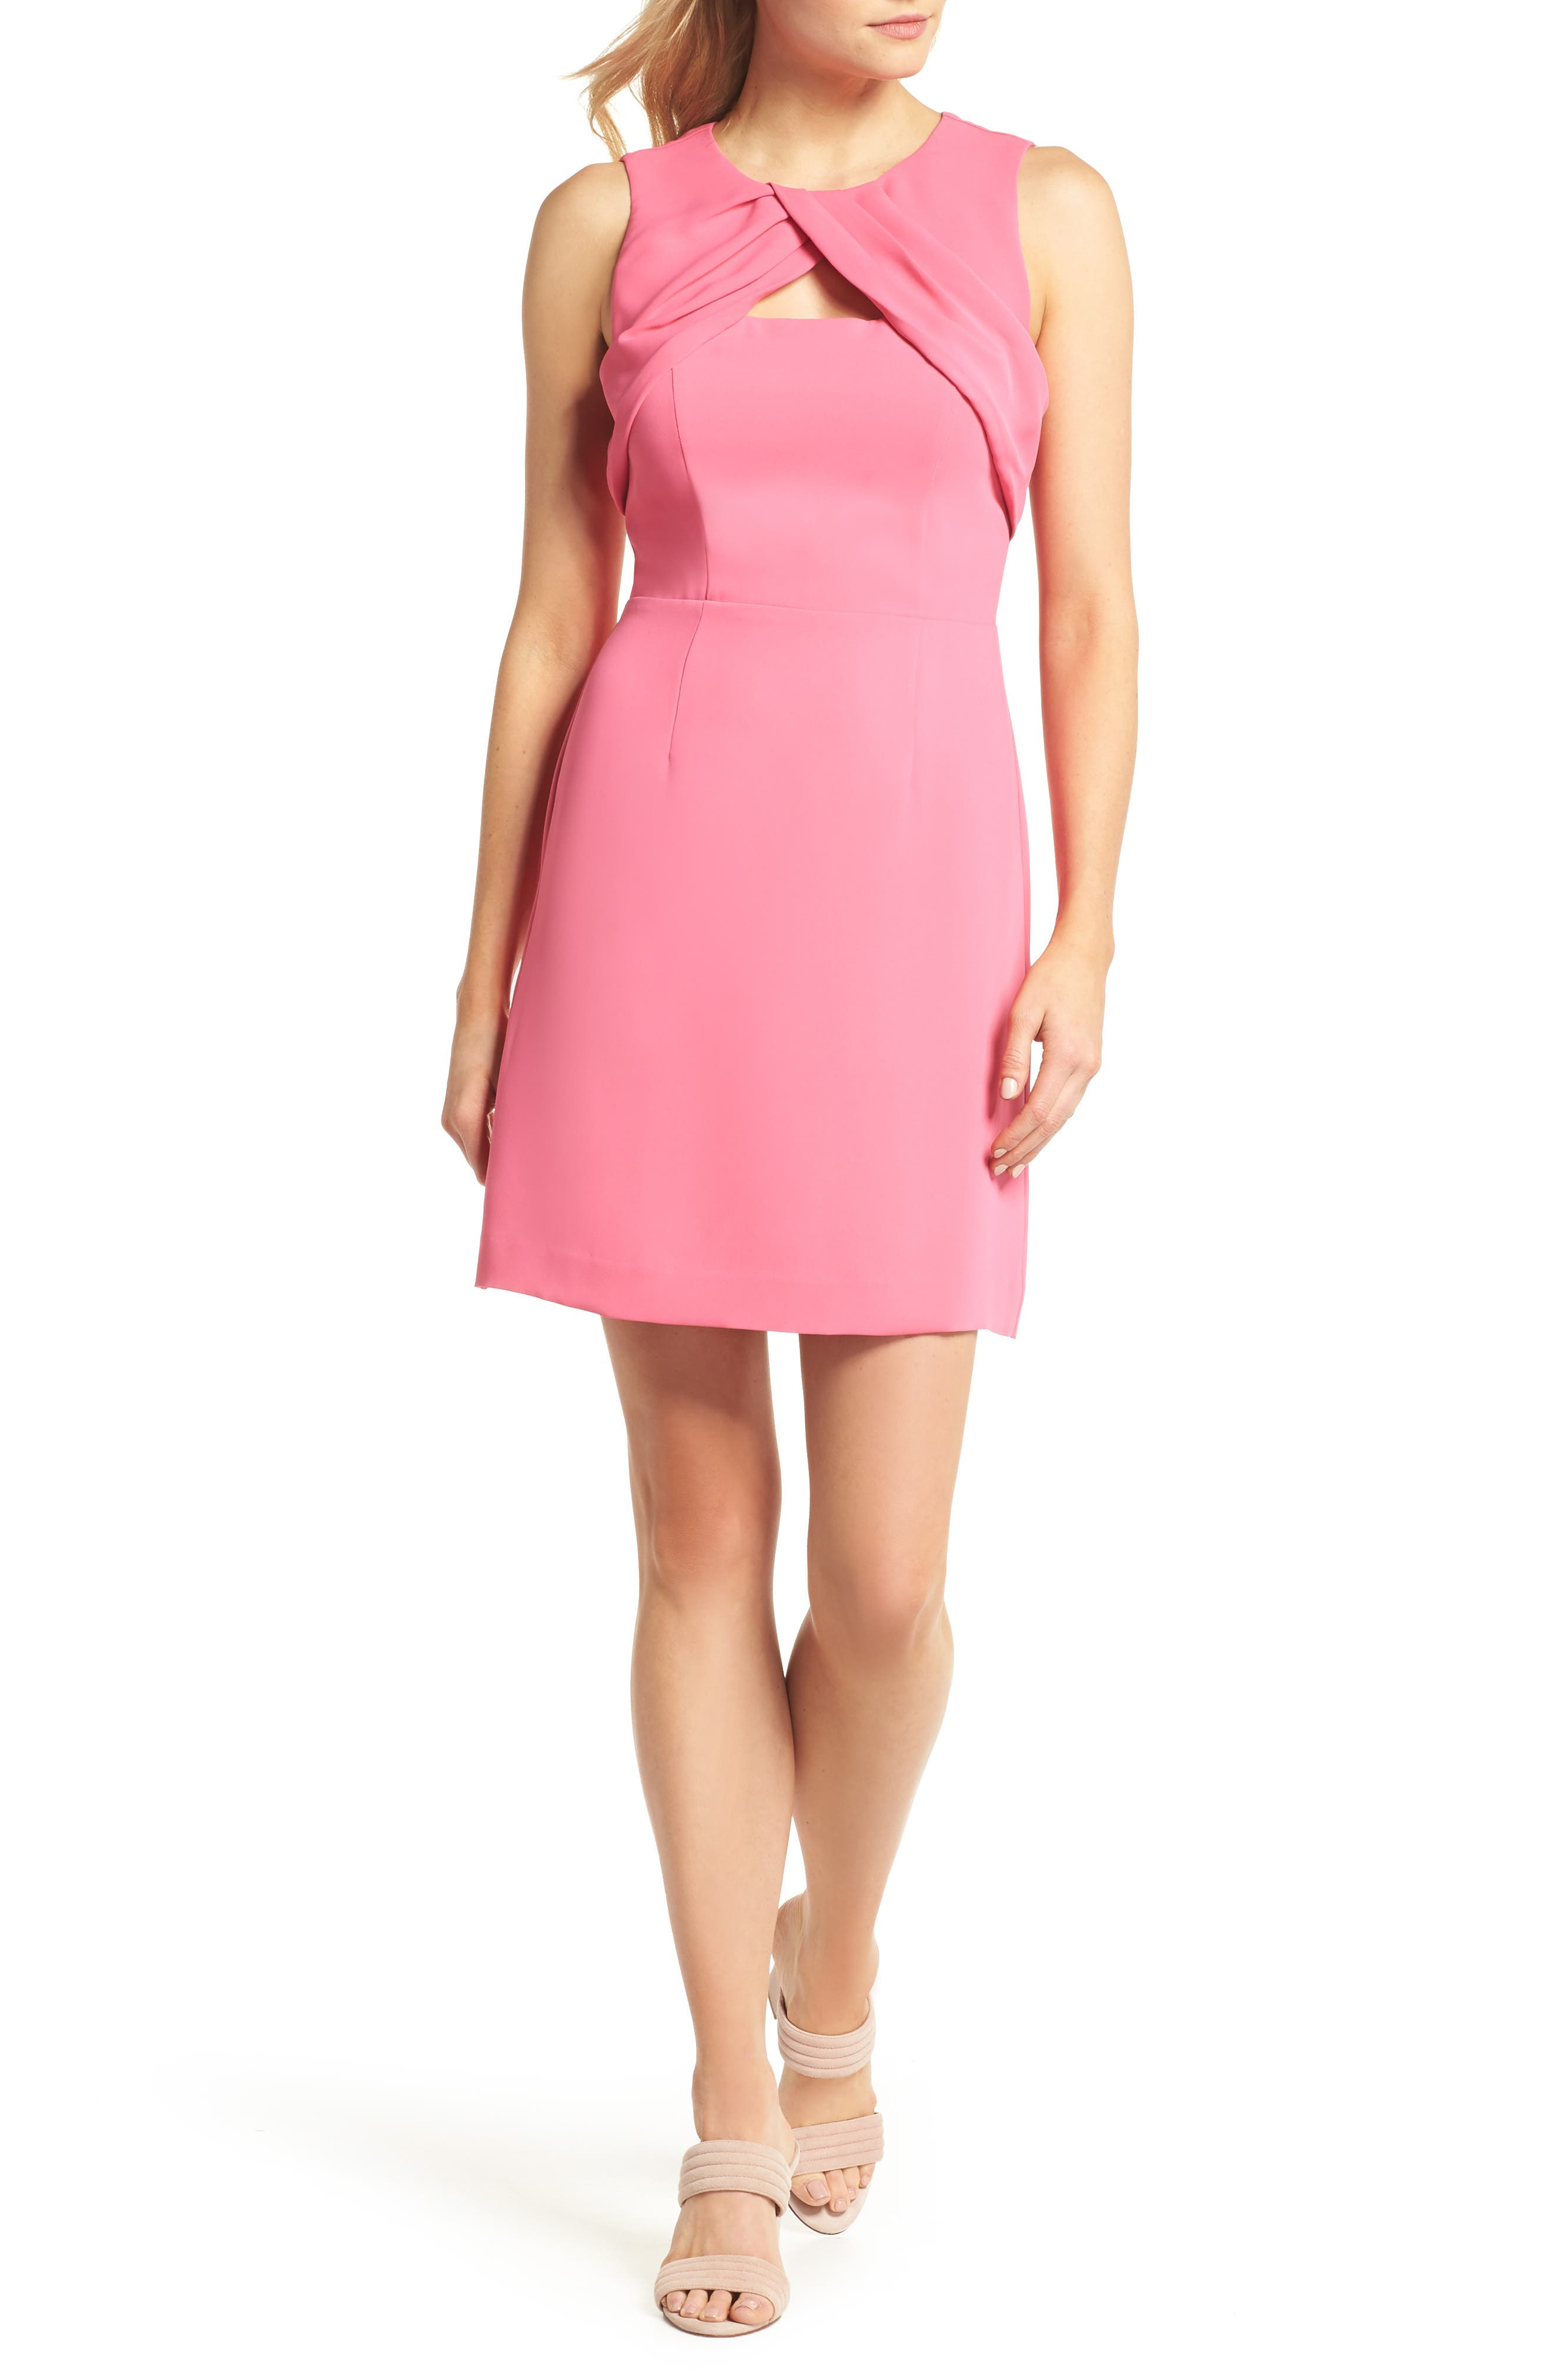 Nera Sheath Dress,                             Main thumbnail 1, color,                             650